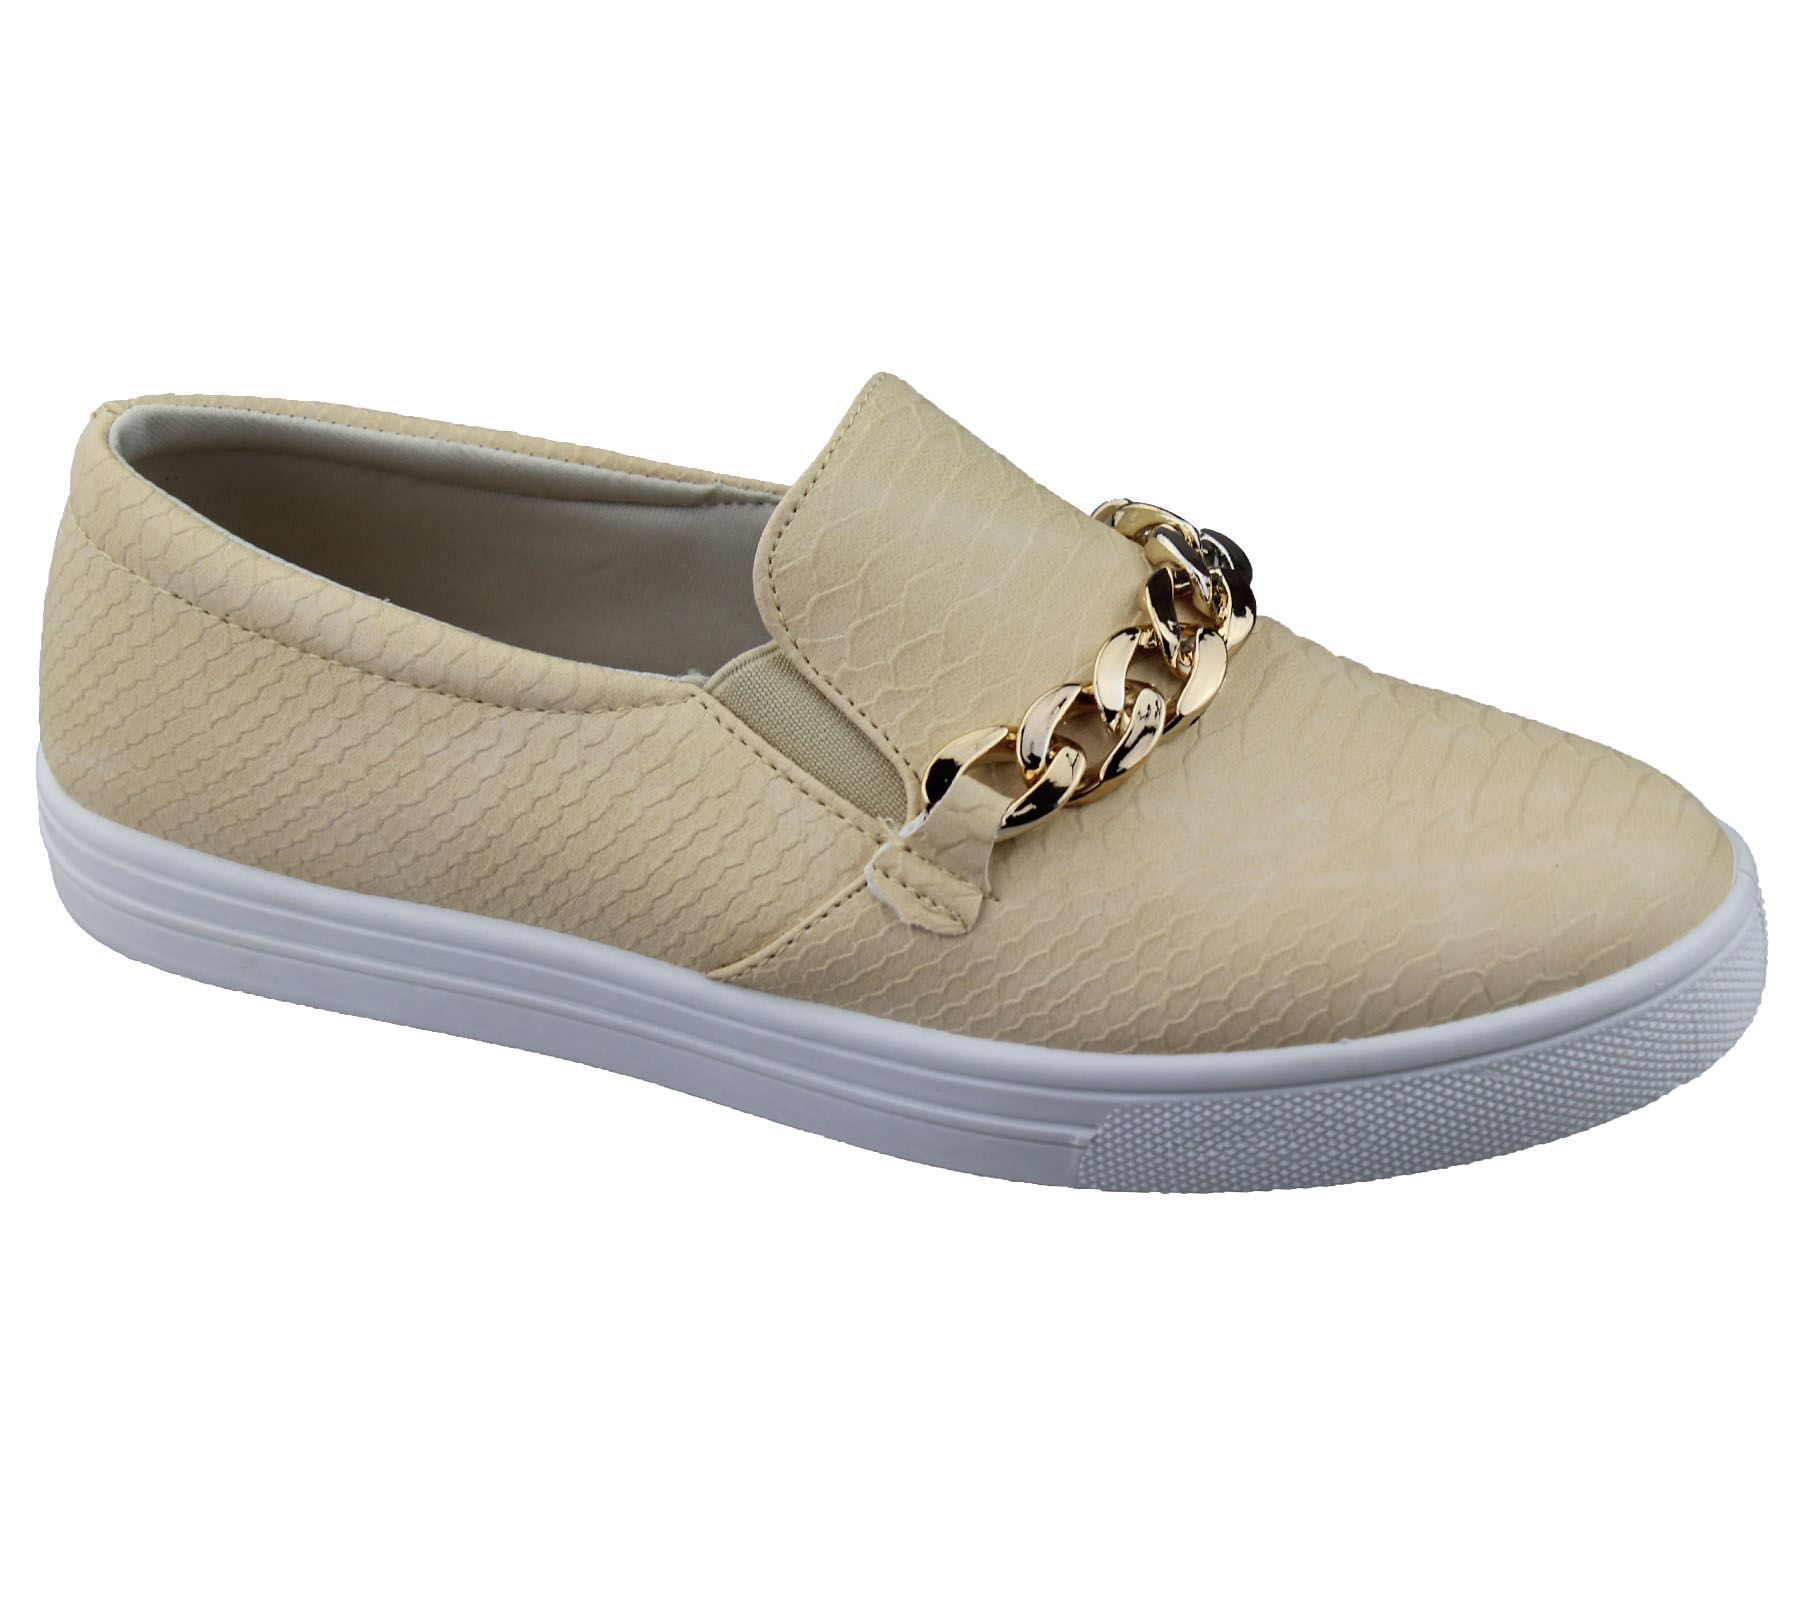 Grey Slip On Shoes For Women With Bow